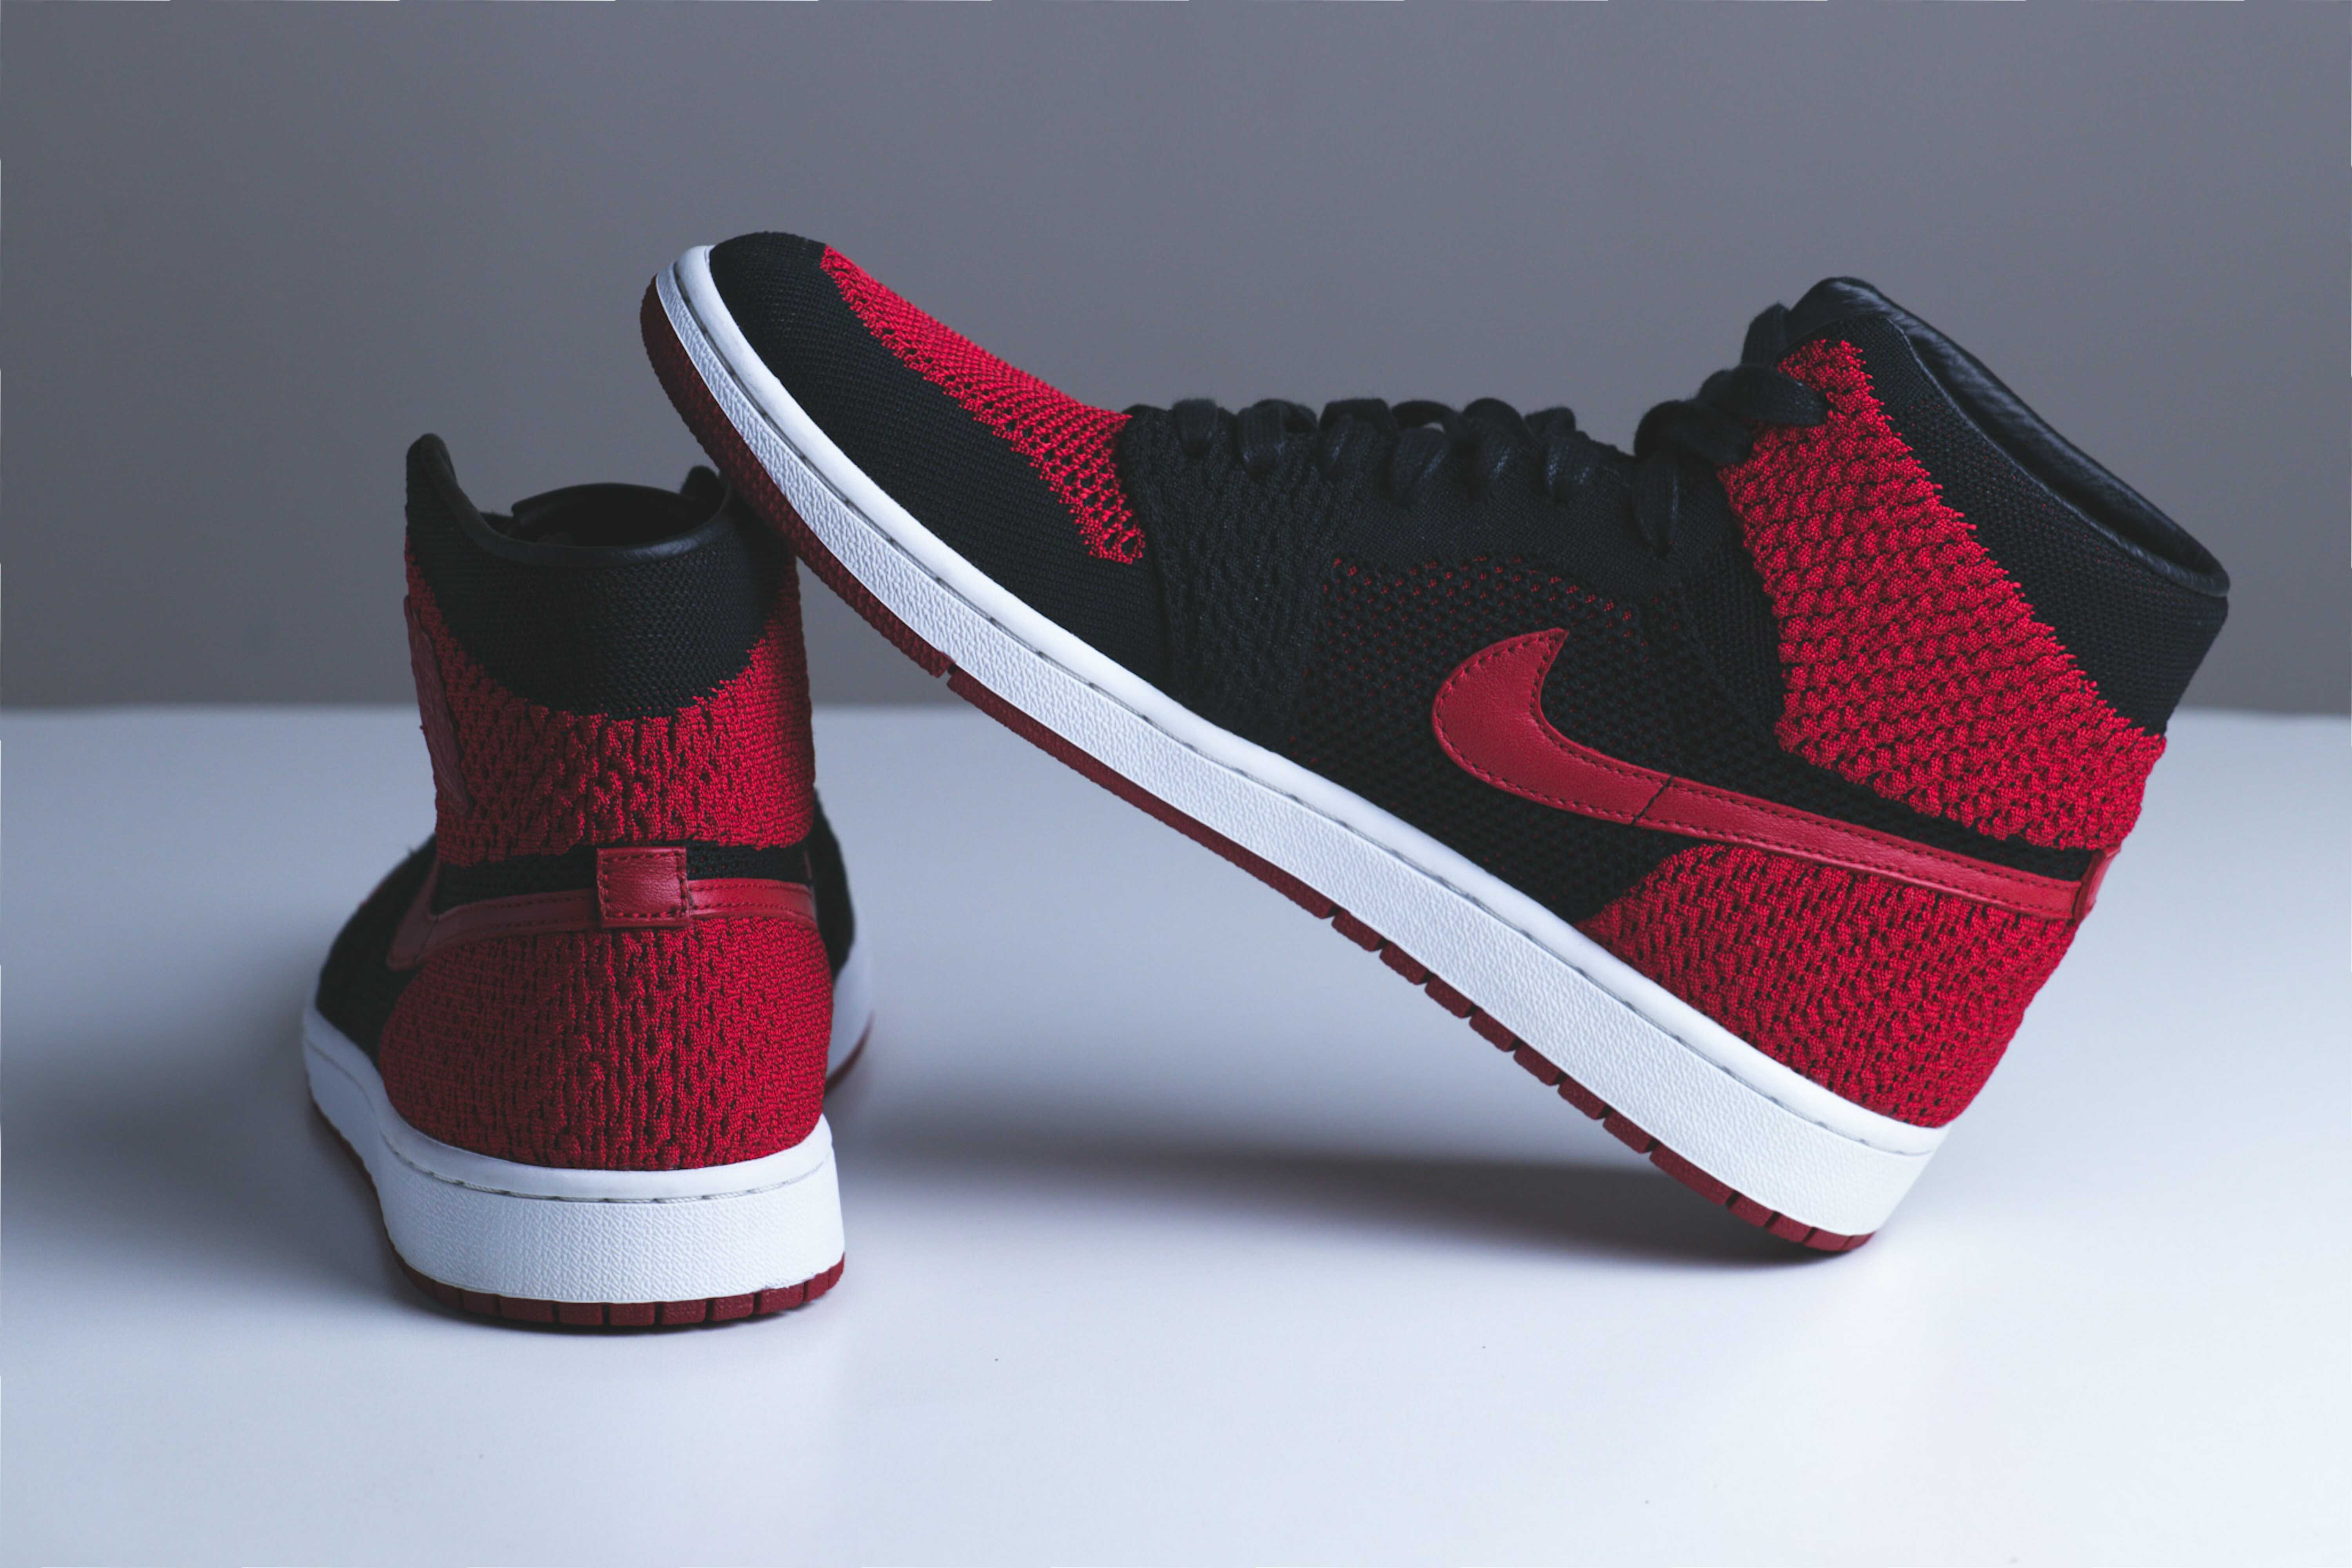 a red athletic shoes